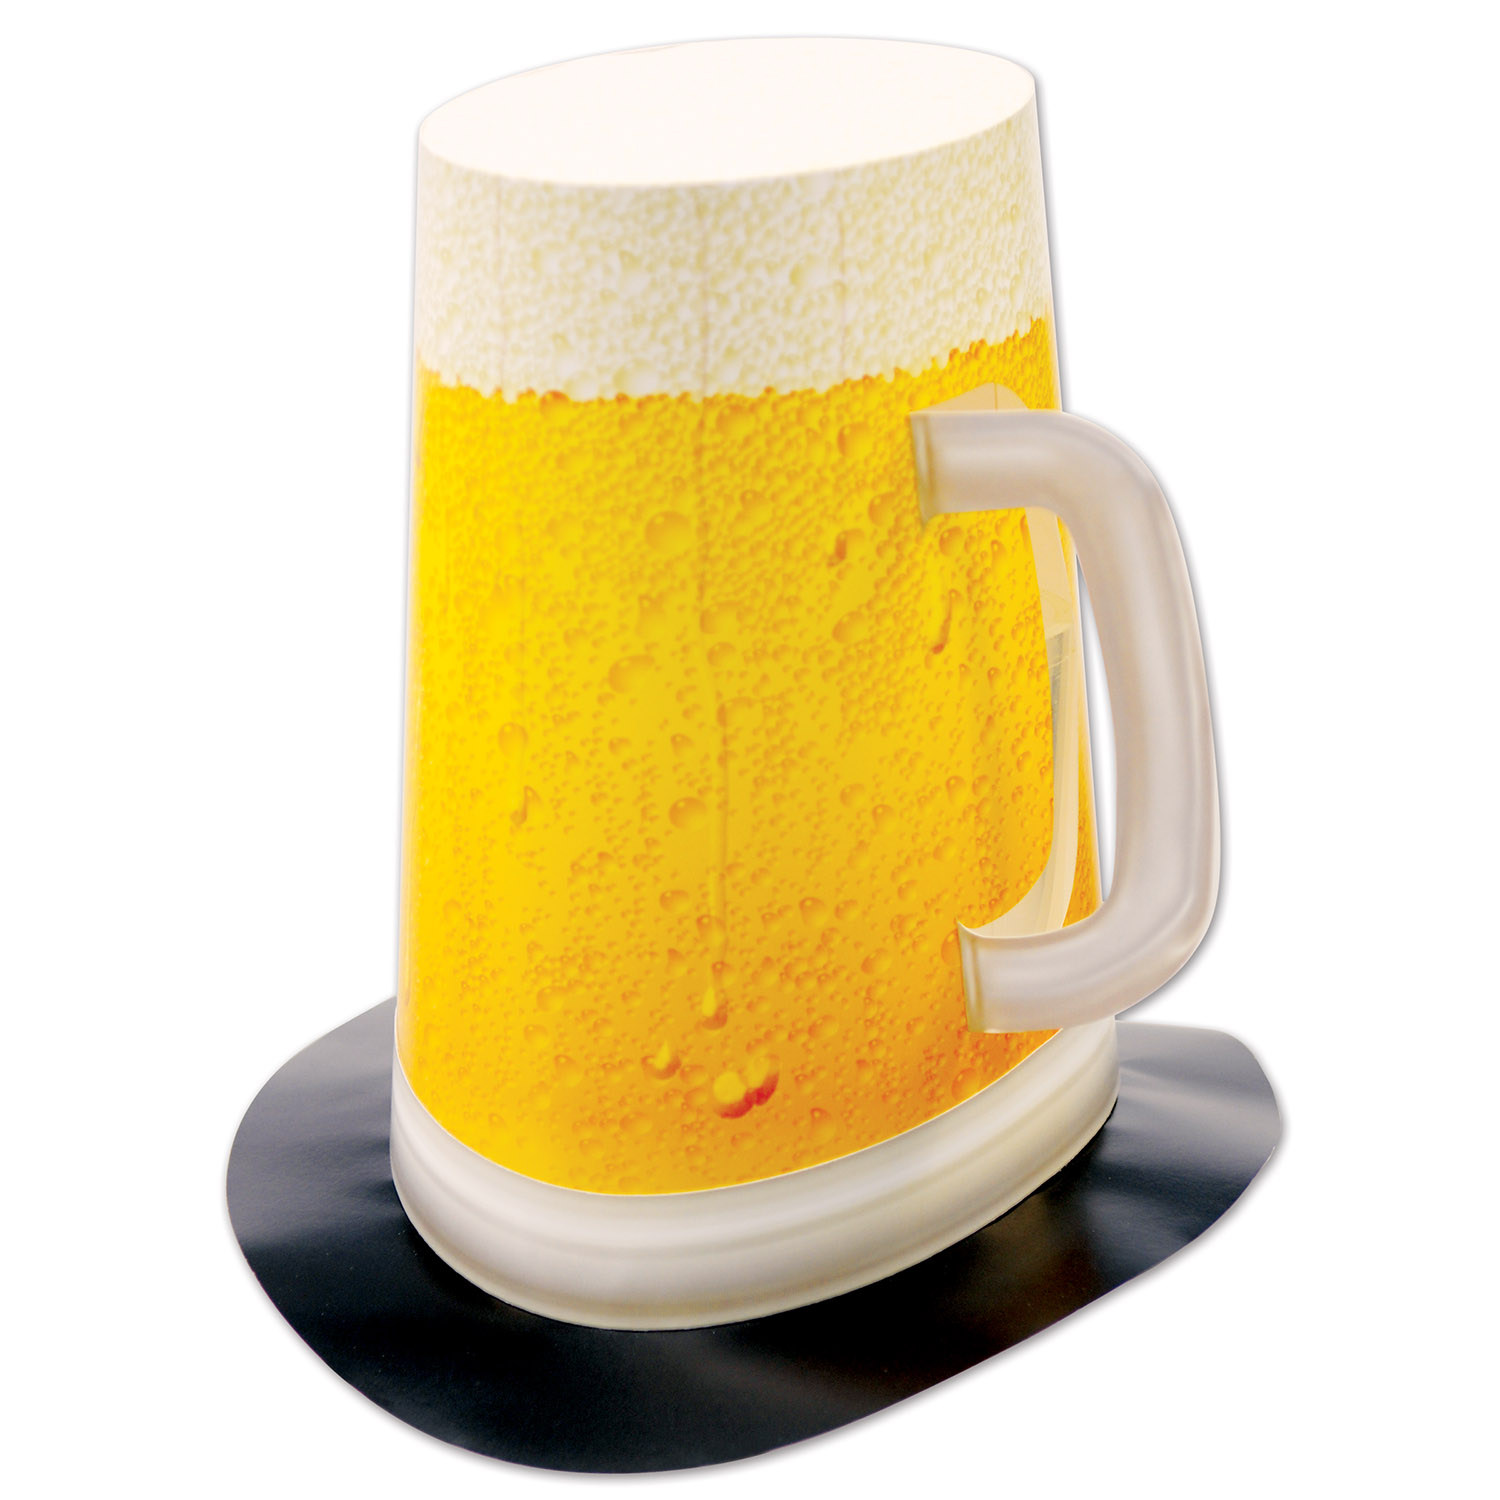 Beer Mug Super Hi-Hat (Pack of 12) Beer Mug Super Hi-Hat, party favor, new years eve, oktoberfest, st. patricks day, wholesale, inexpensive, bulk